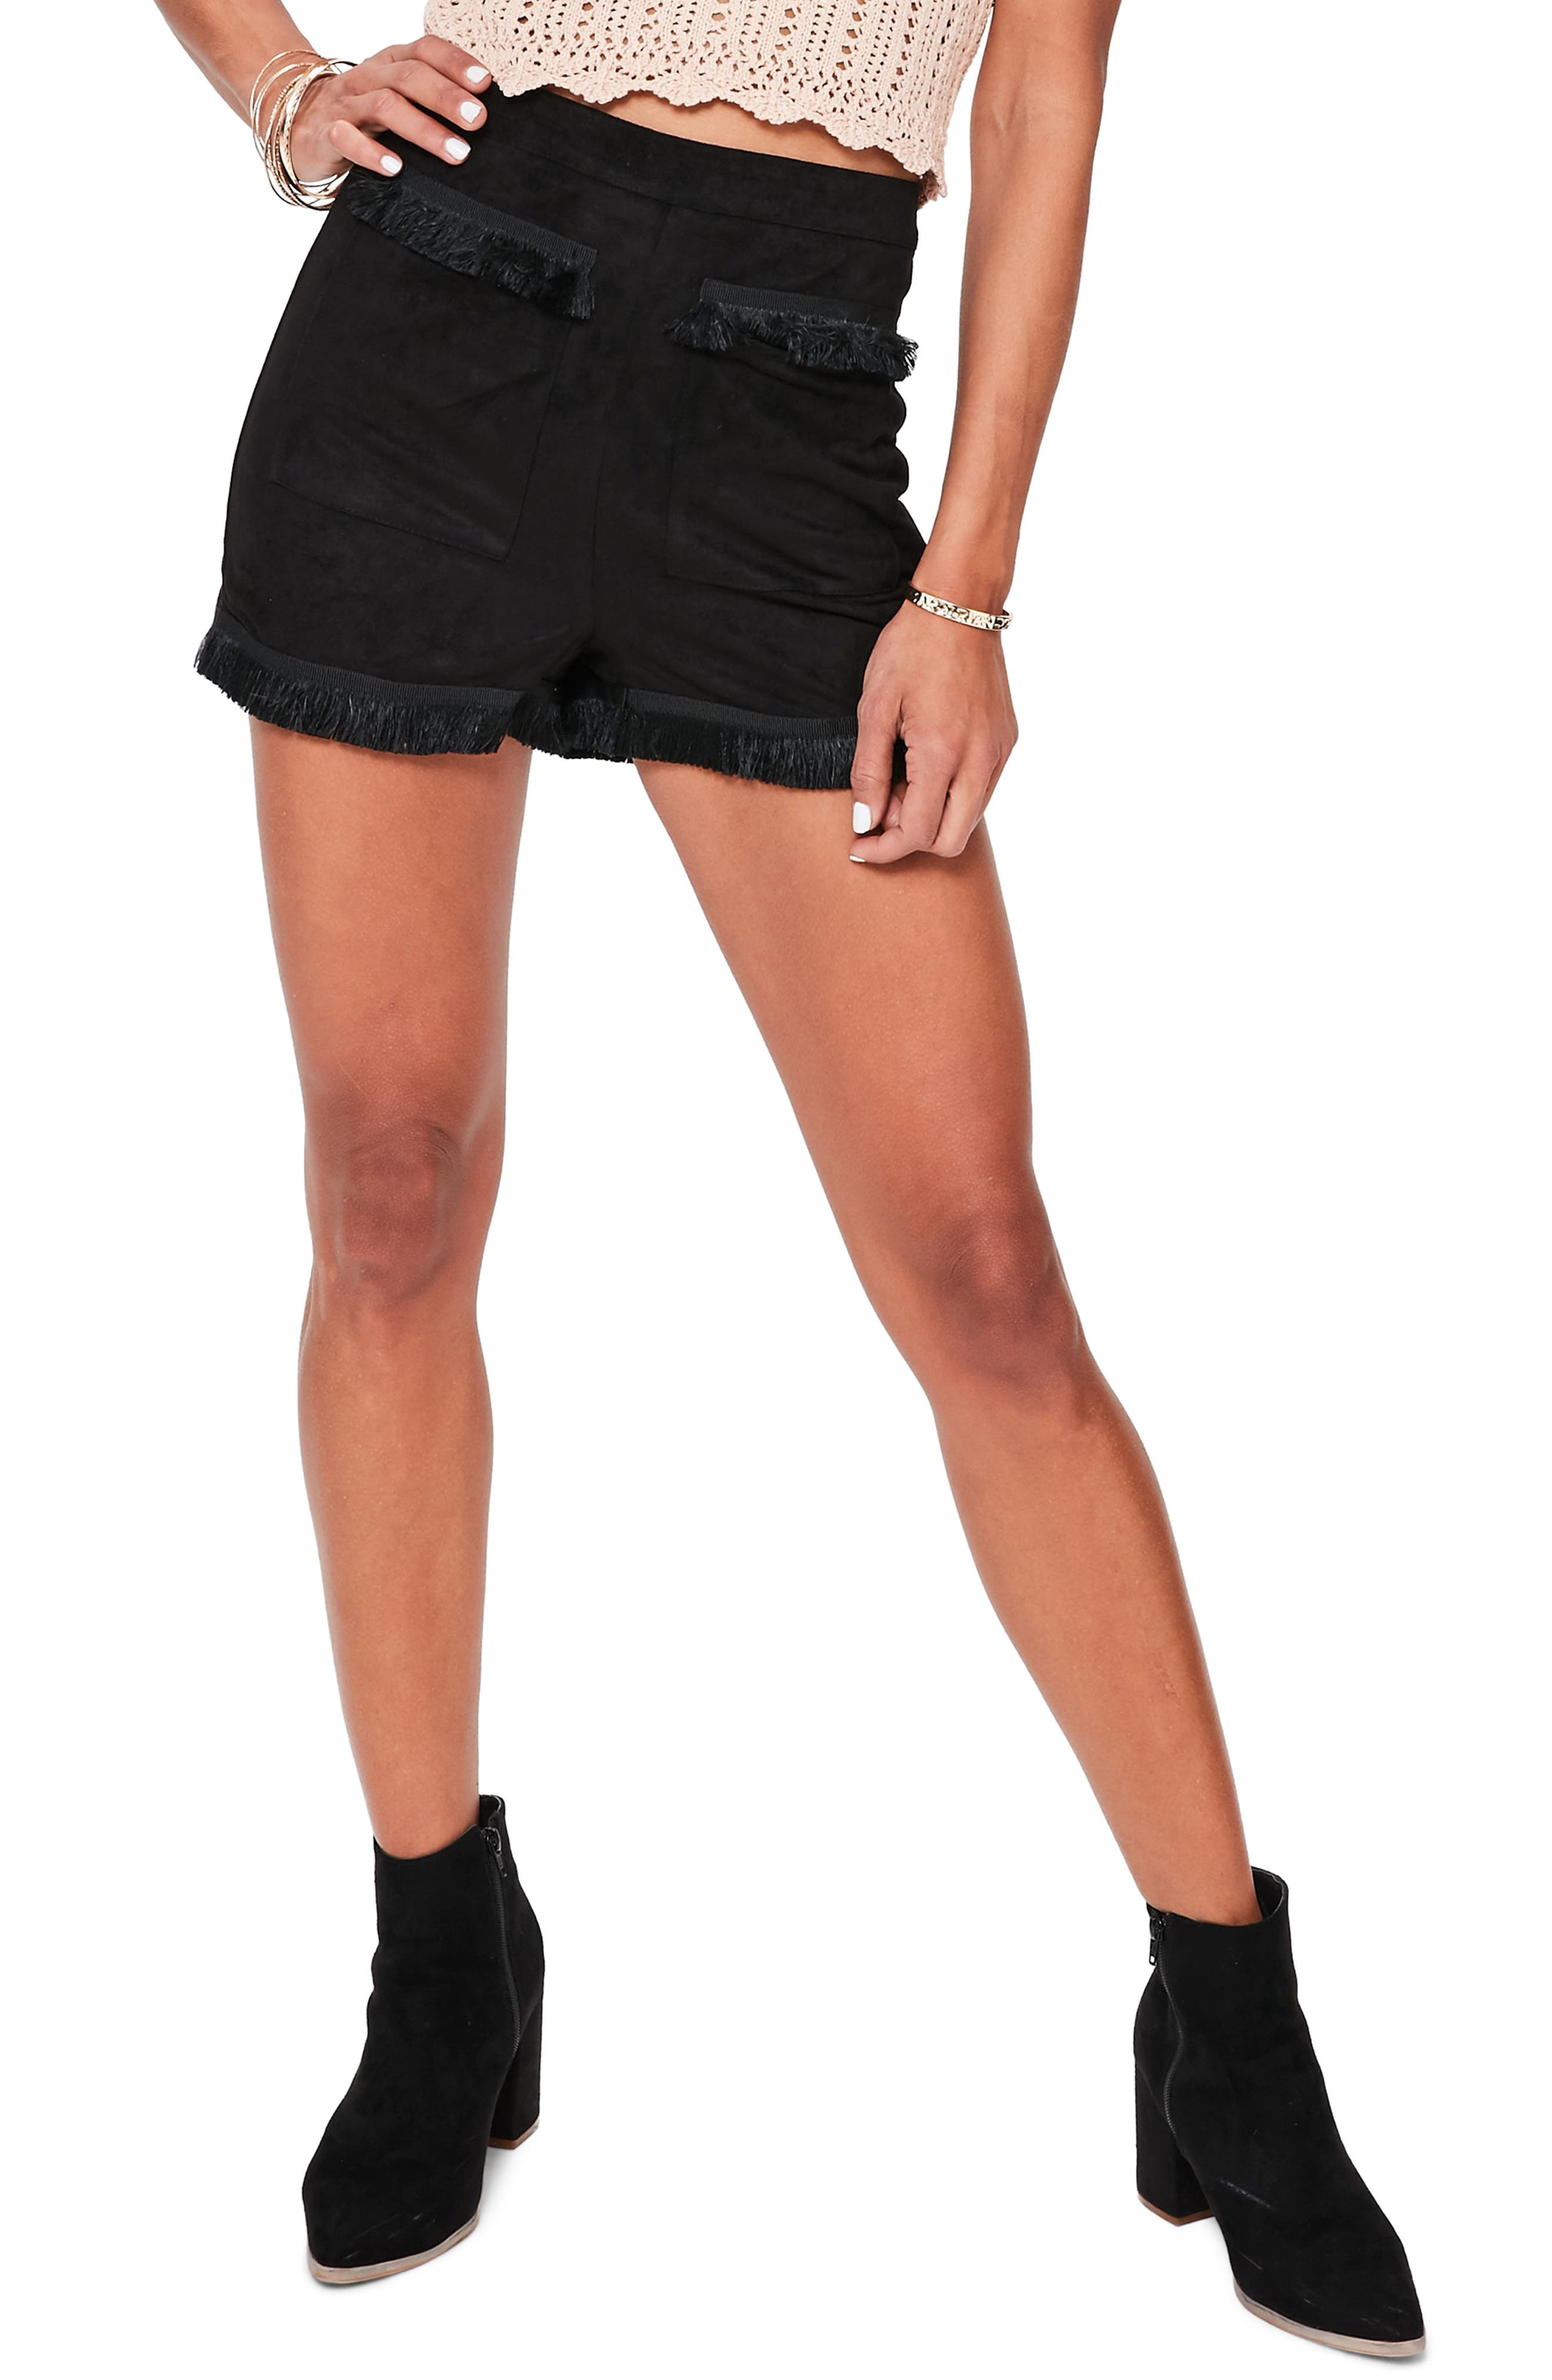 Alternate Image 1 Selected - Missguided Fringe Detail Faux Suede Shorts